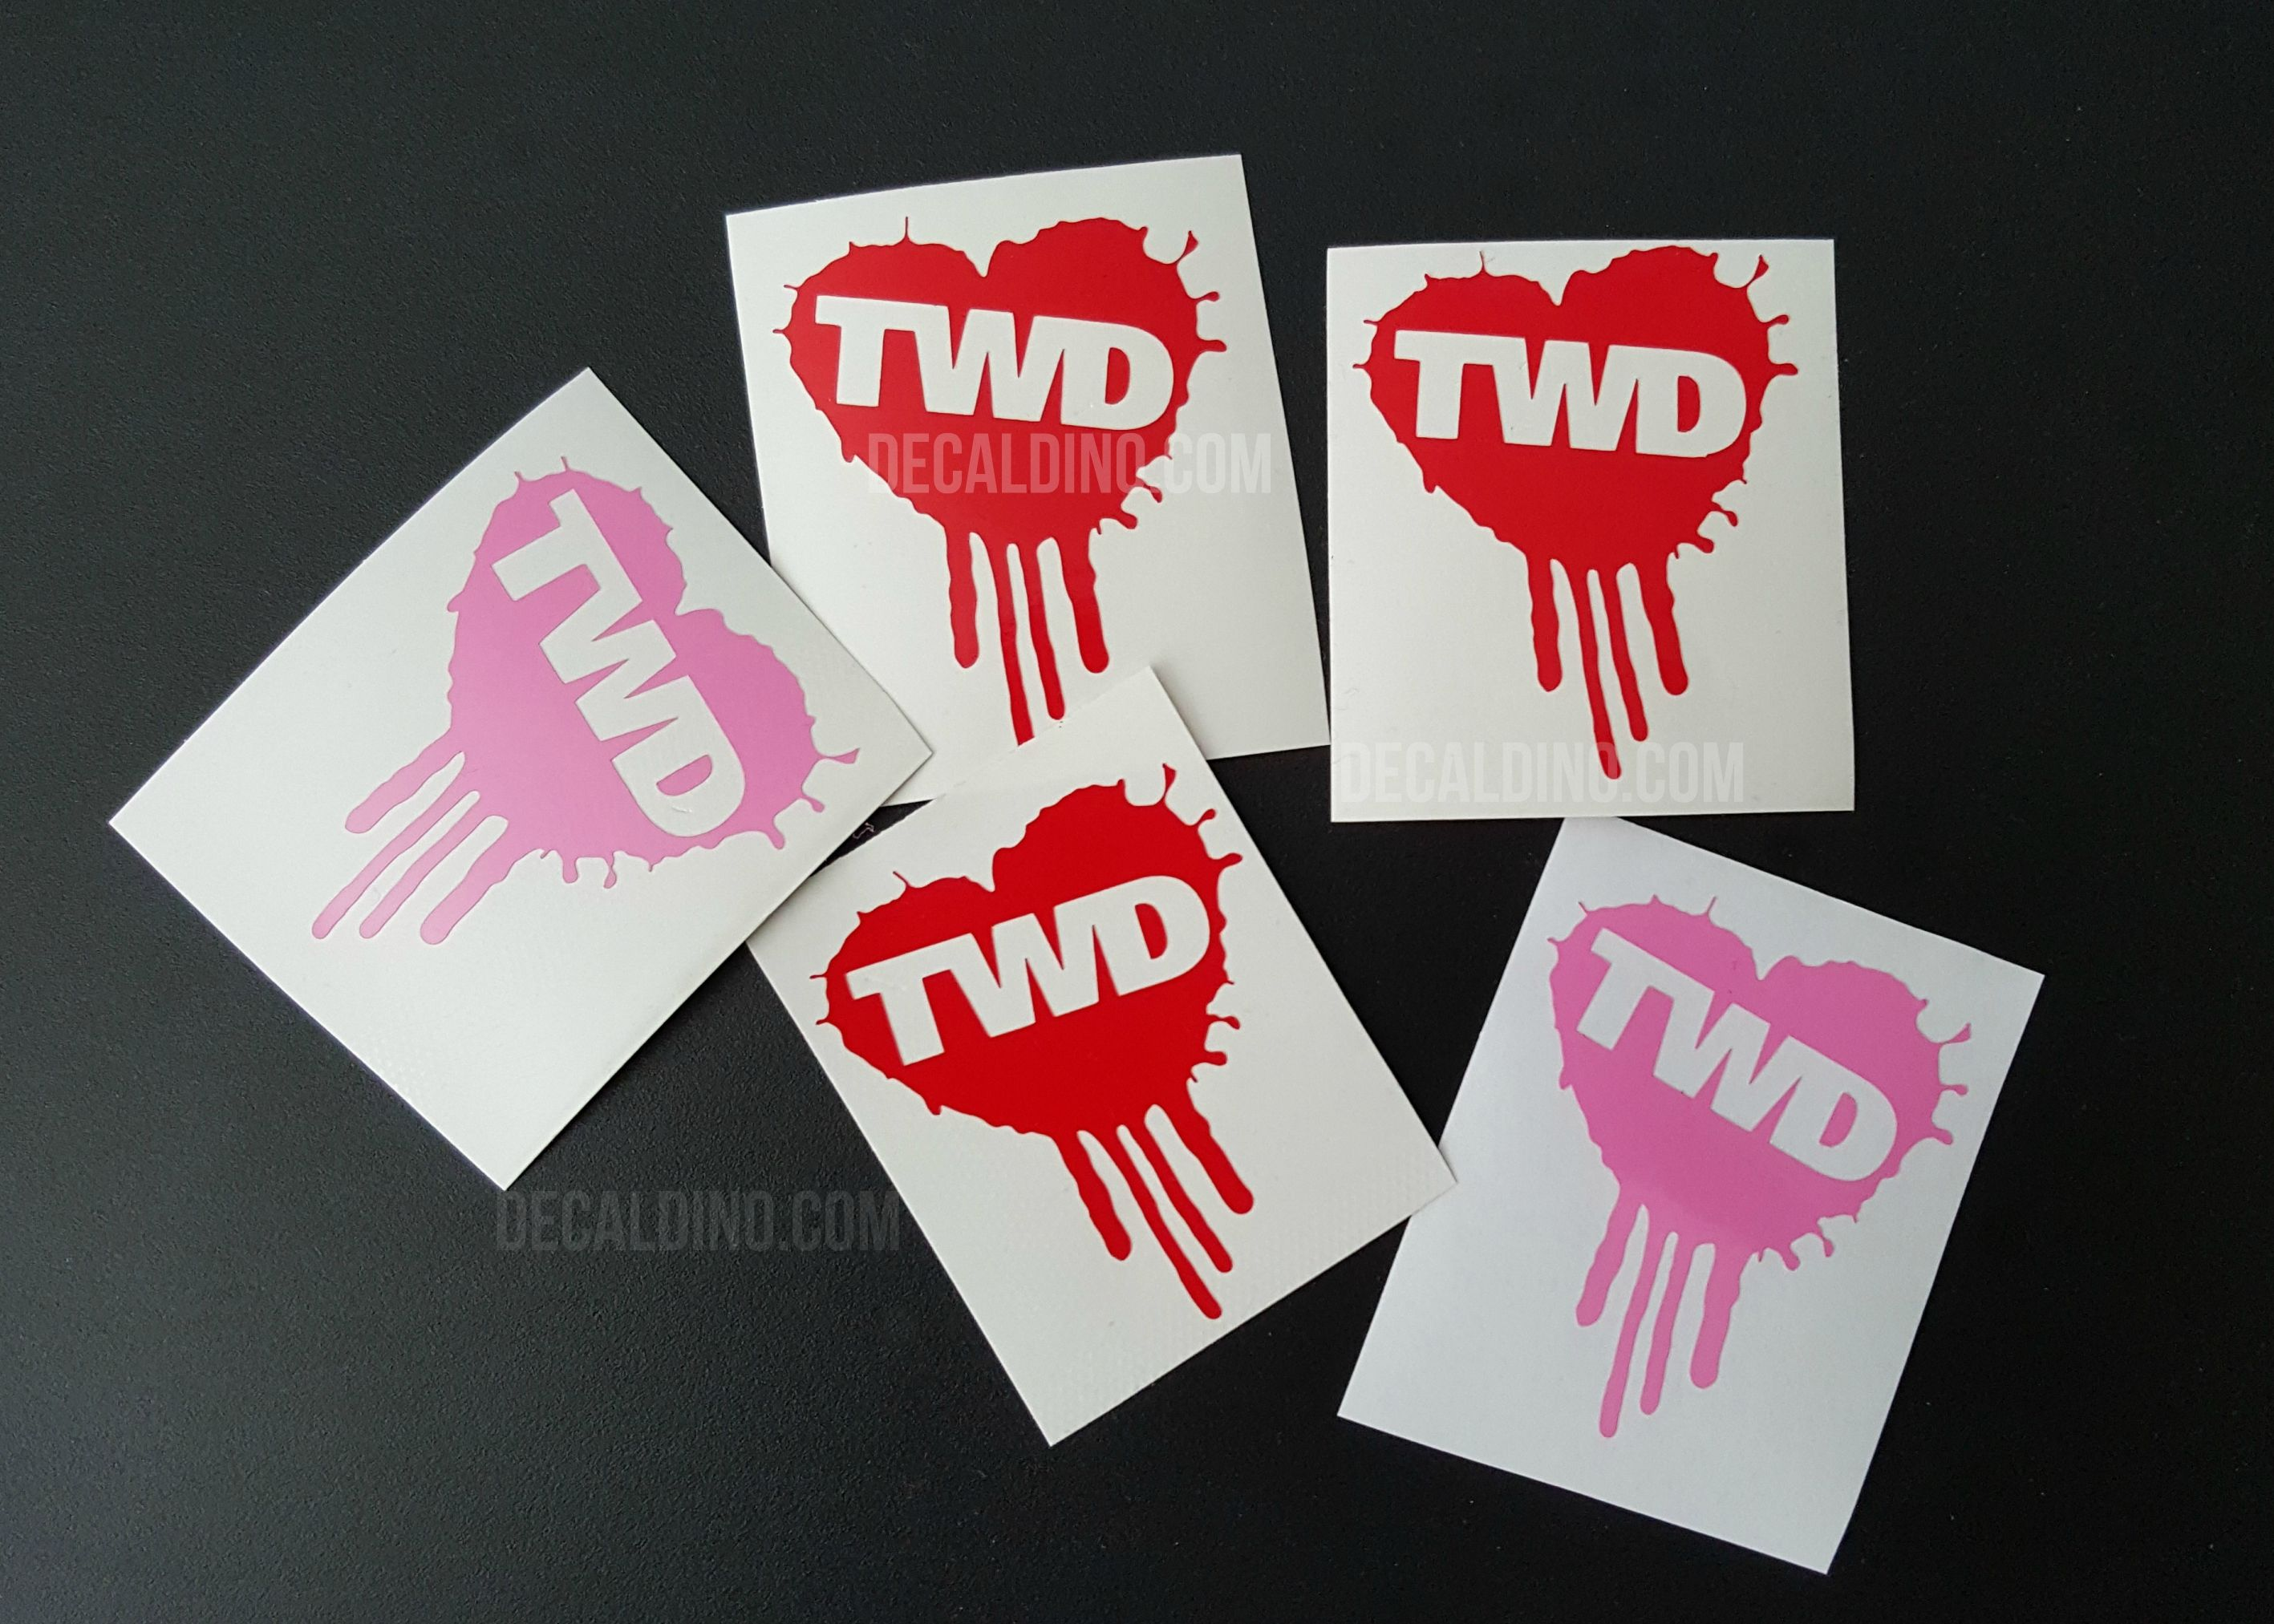 Twd Heart Stuff And Thangs Twd Heart Decals [ jpg ]